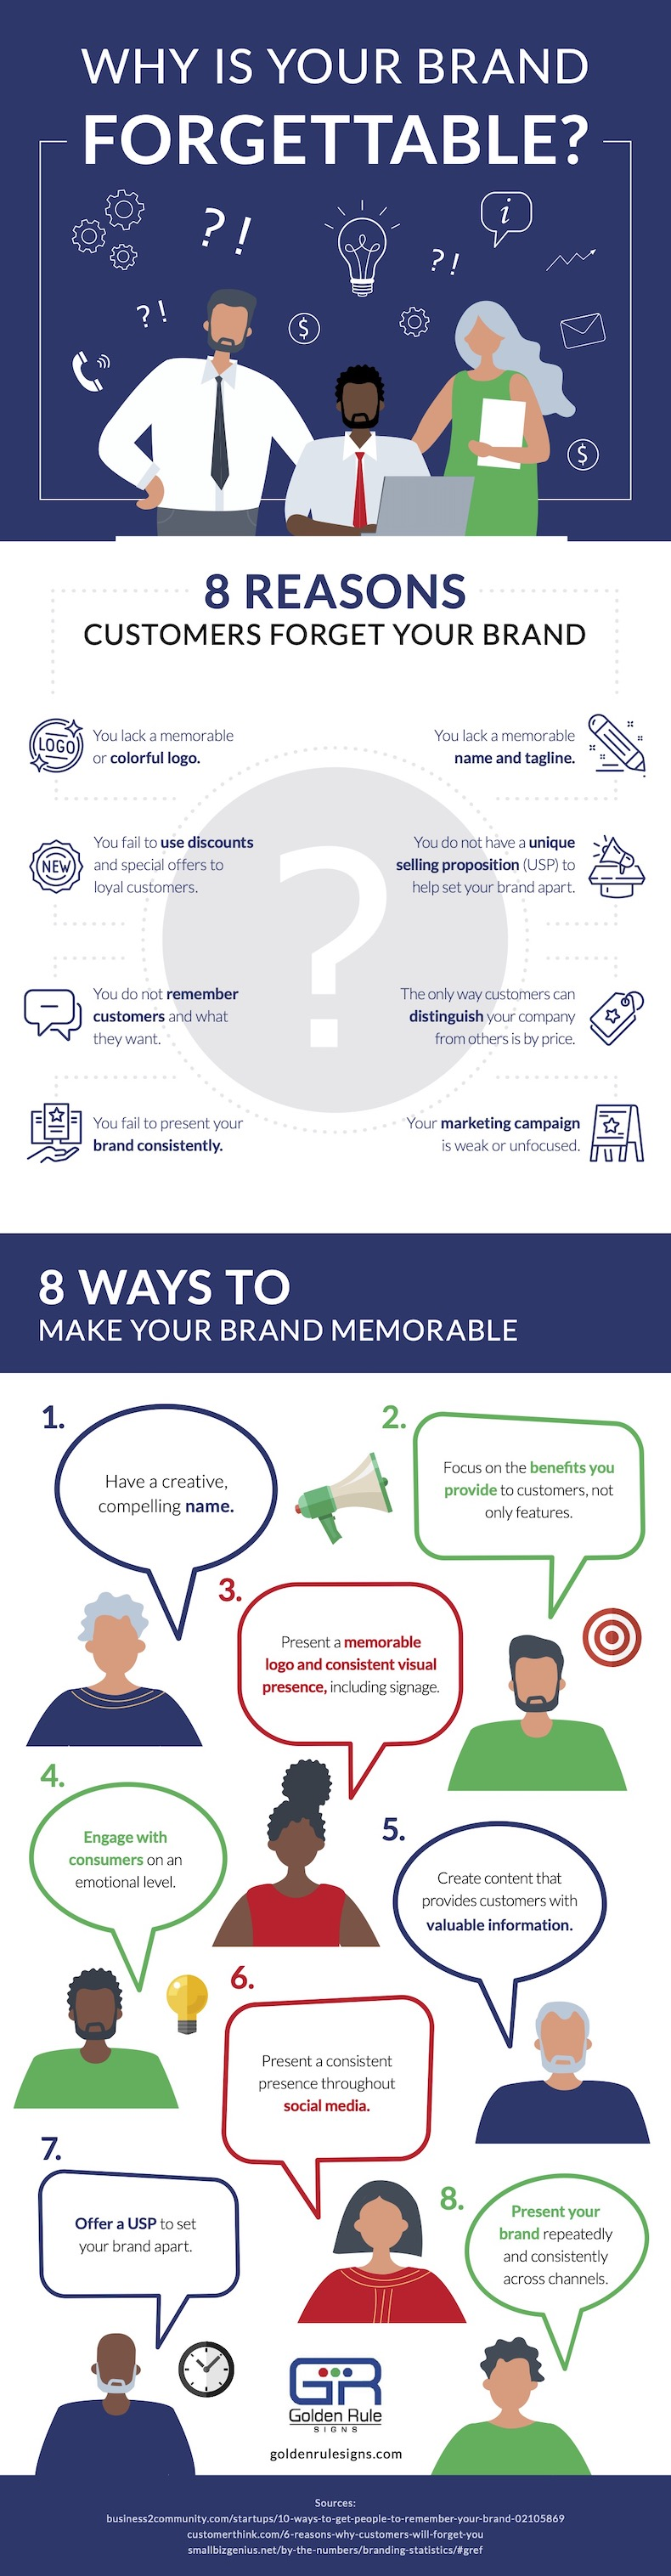 How to make your brand memorable infographic